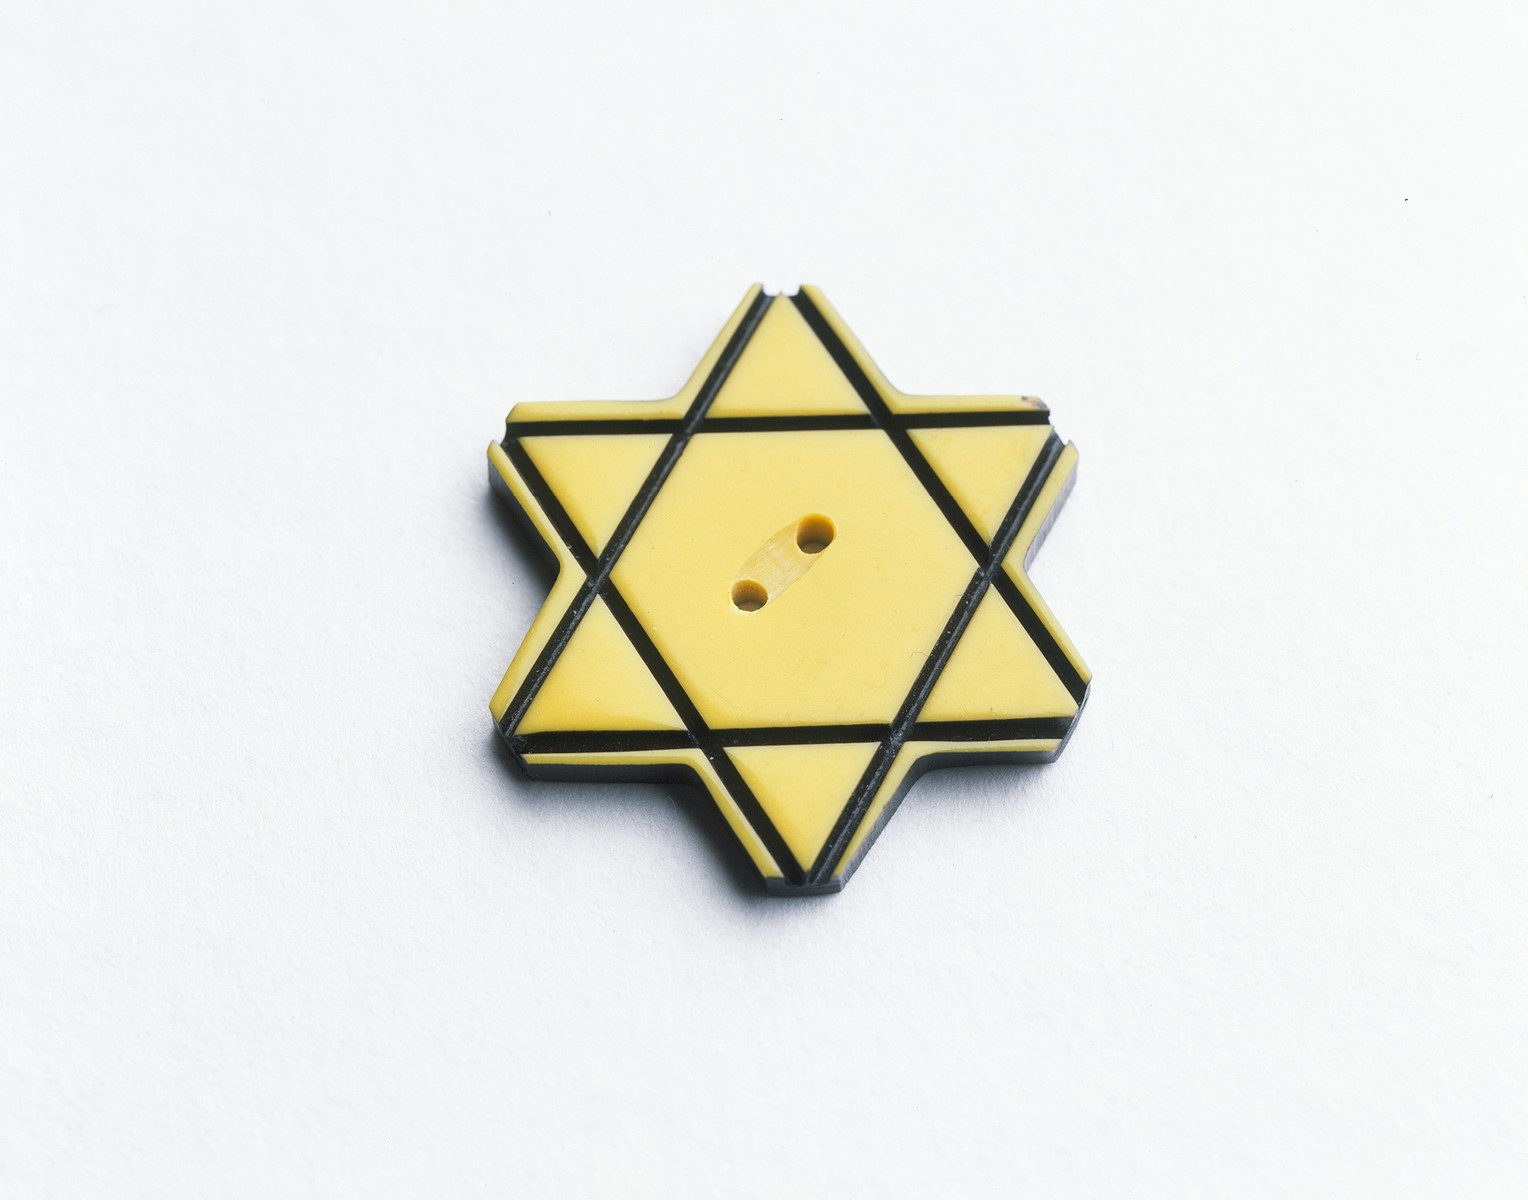 A star of David button worn by a member of Aaron Bally's family to identify the wearer as a Jew in Bulgaria.